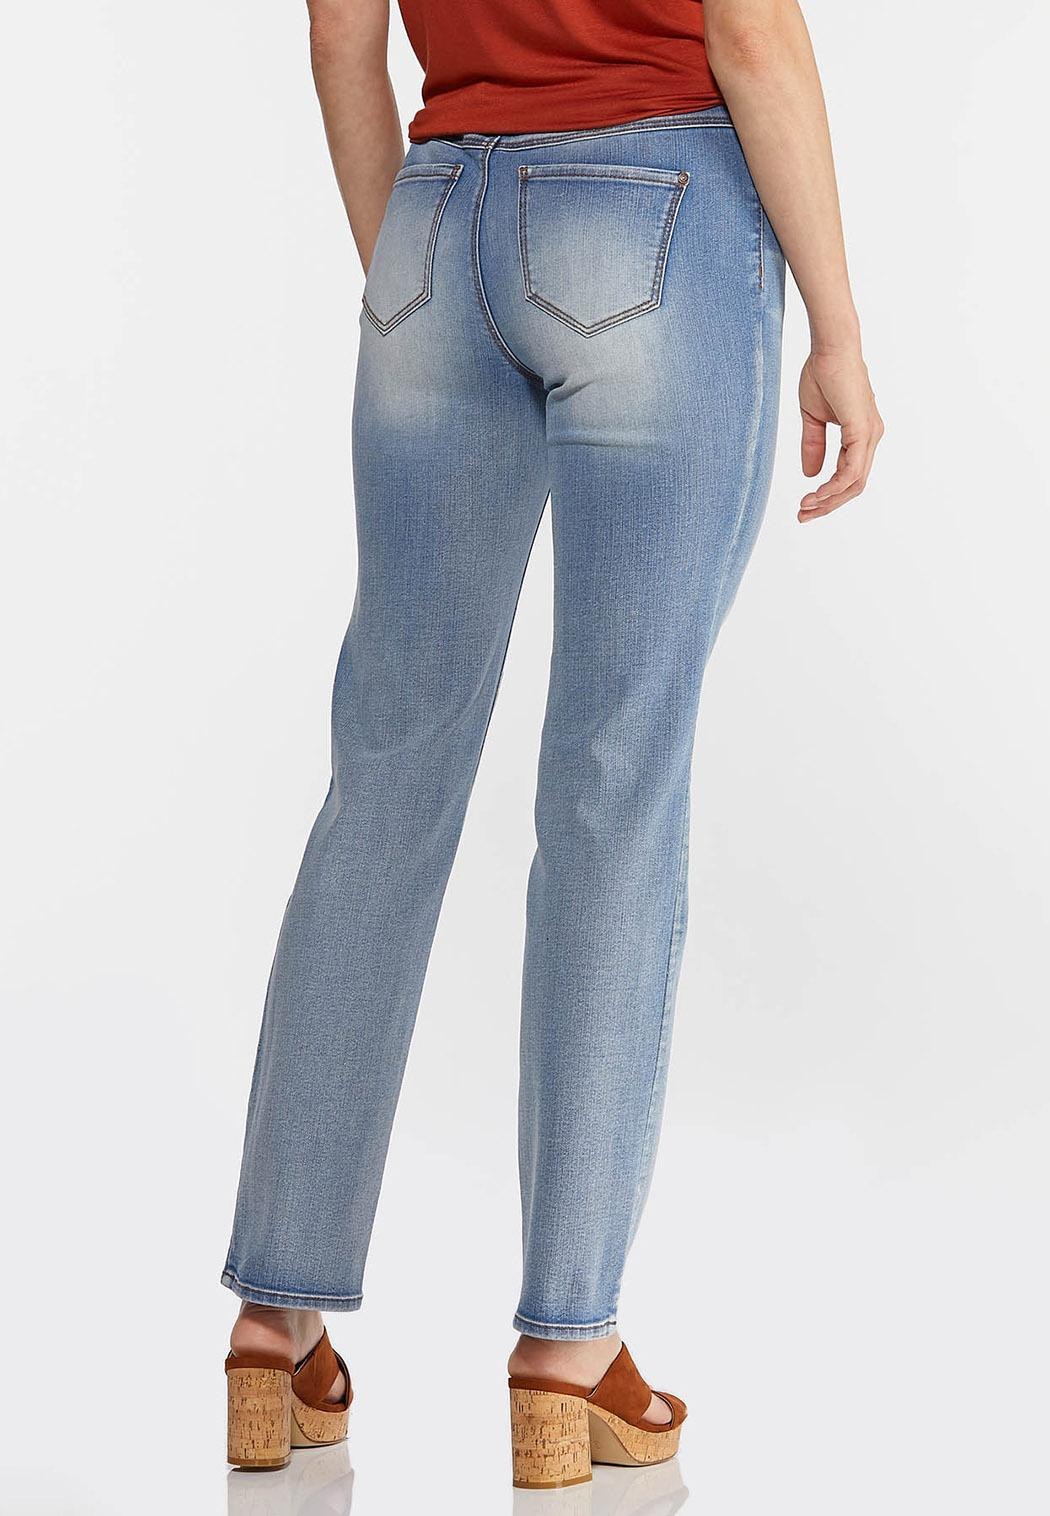 Faded High-Rise Straight Leg Jeans (Item #44342166)